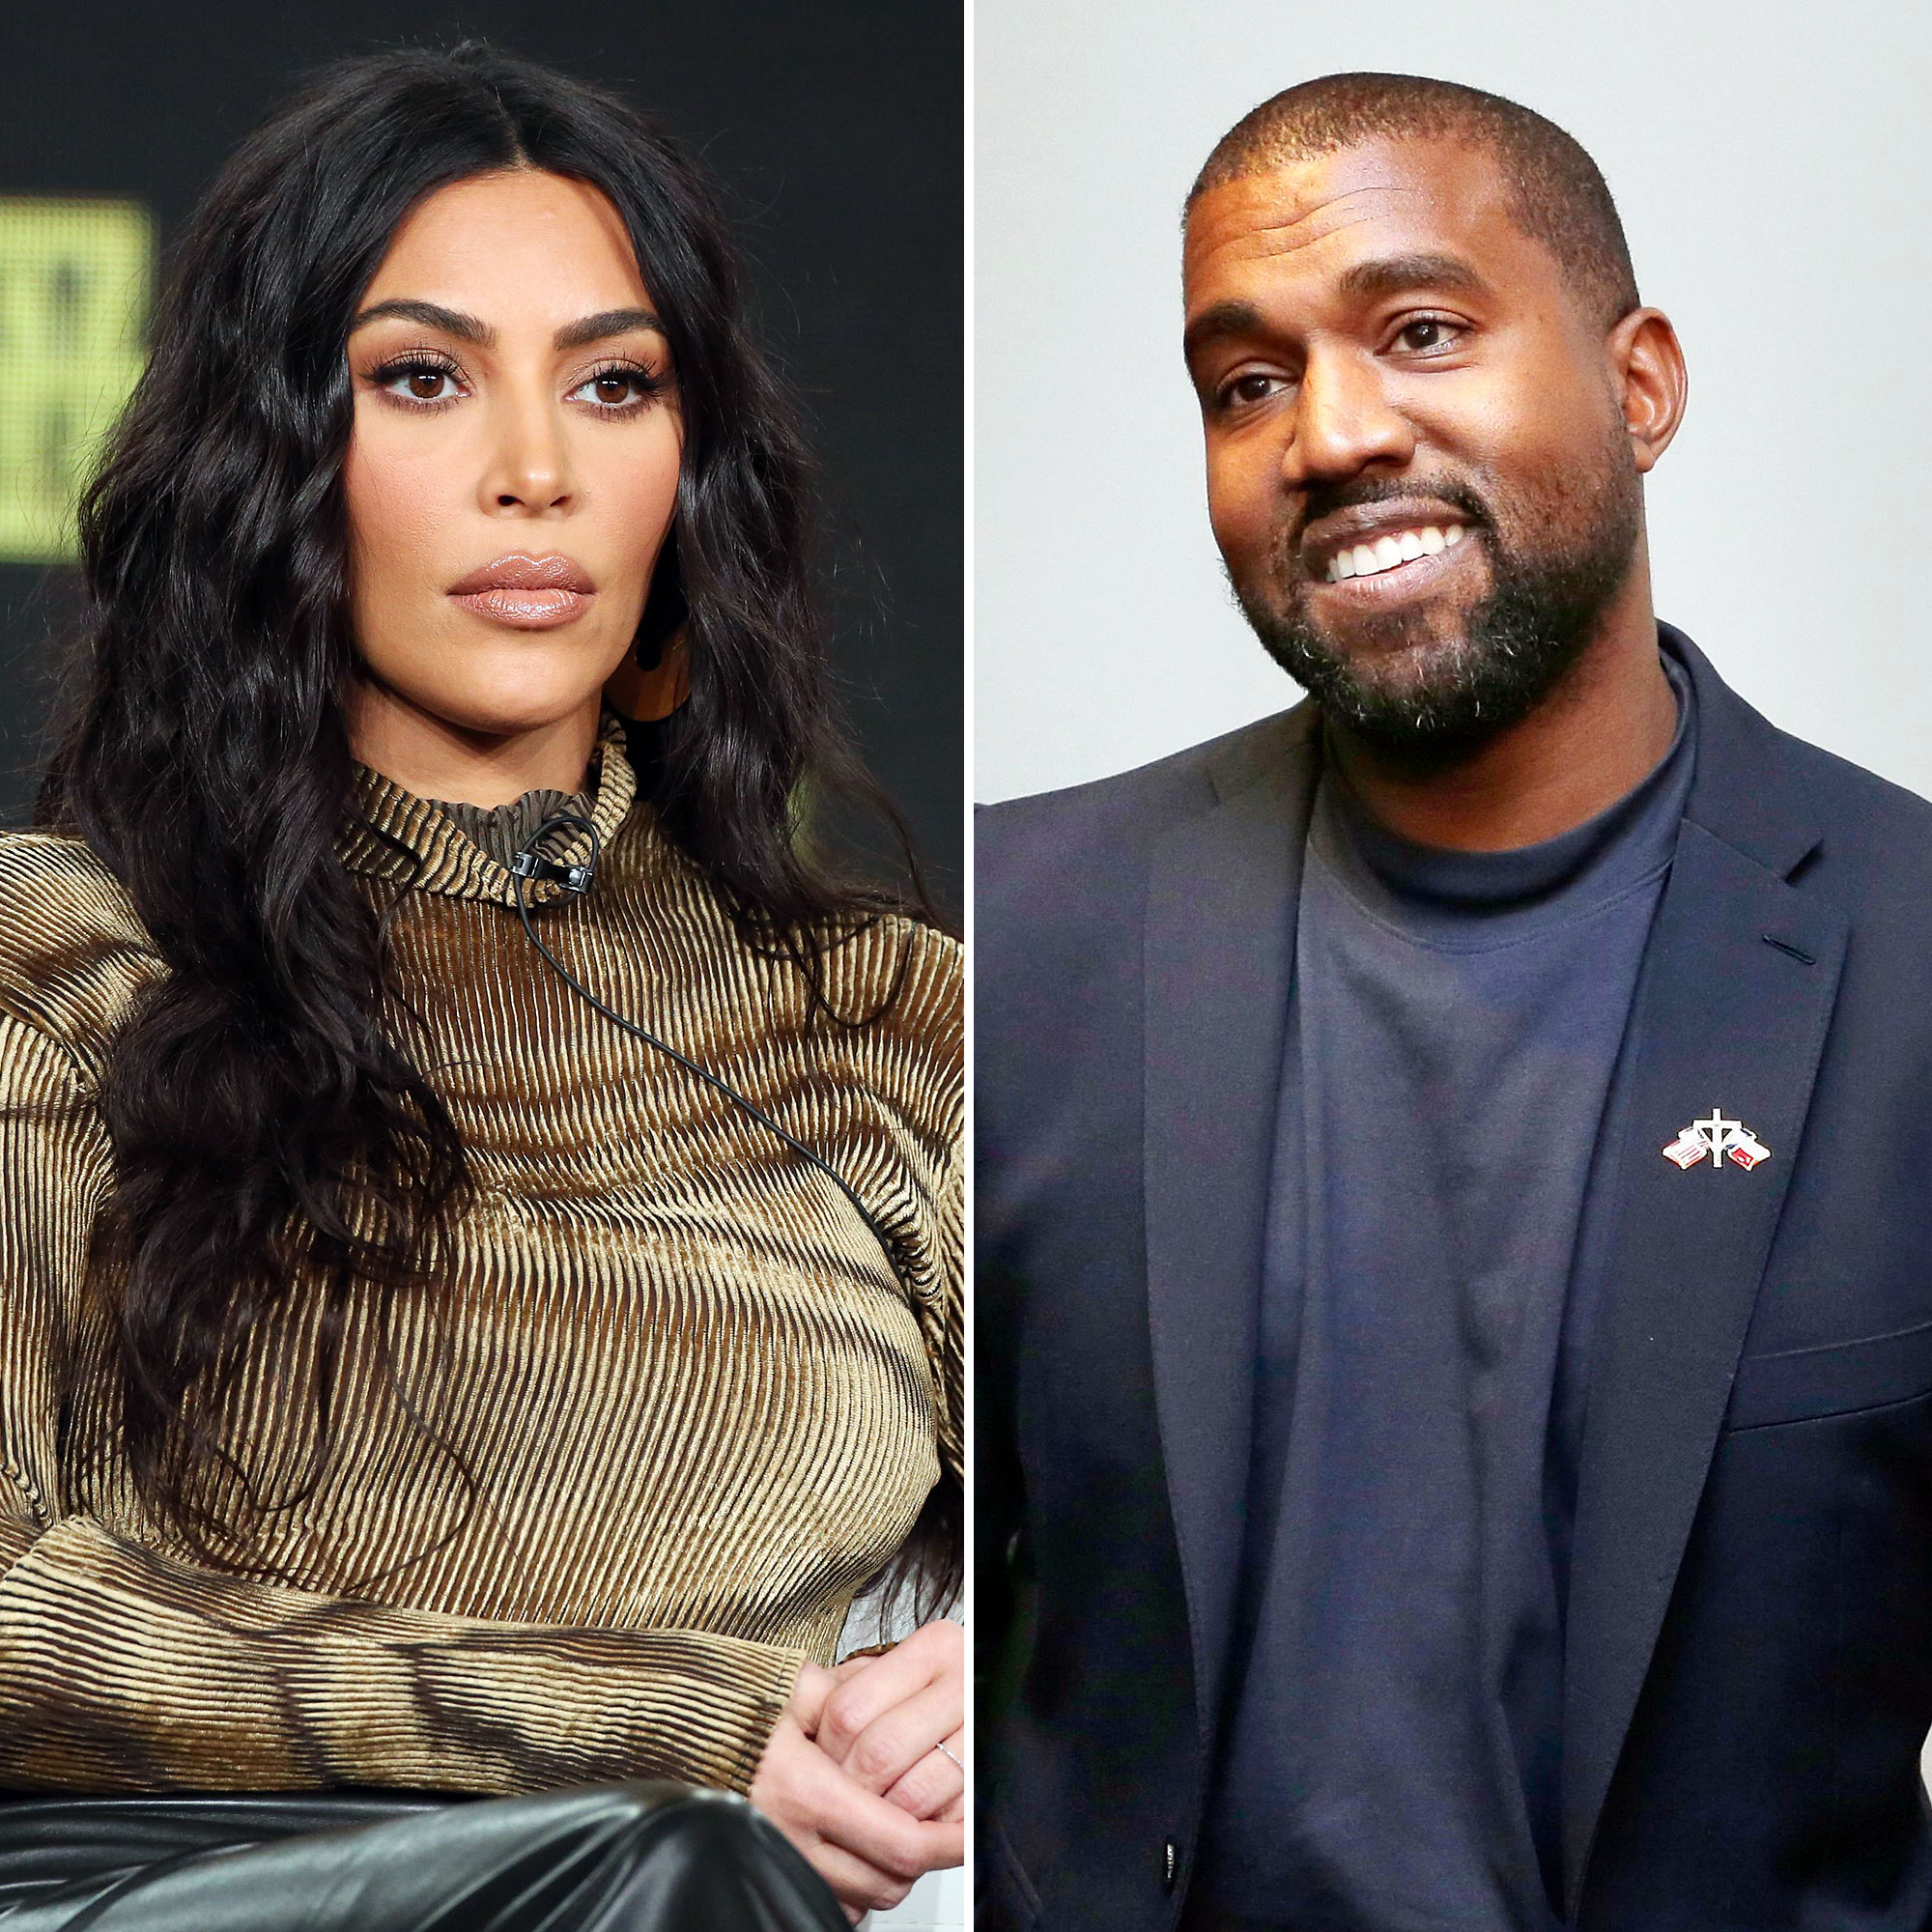 Kim Kardashian Is Deeply Upset After Kanye West Shocking Tweets